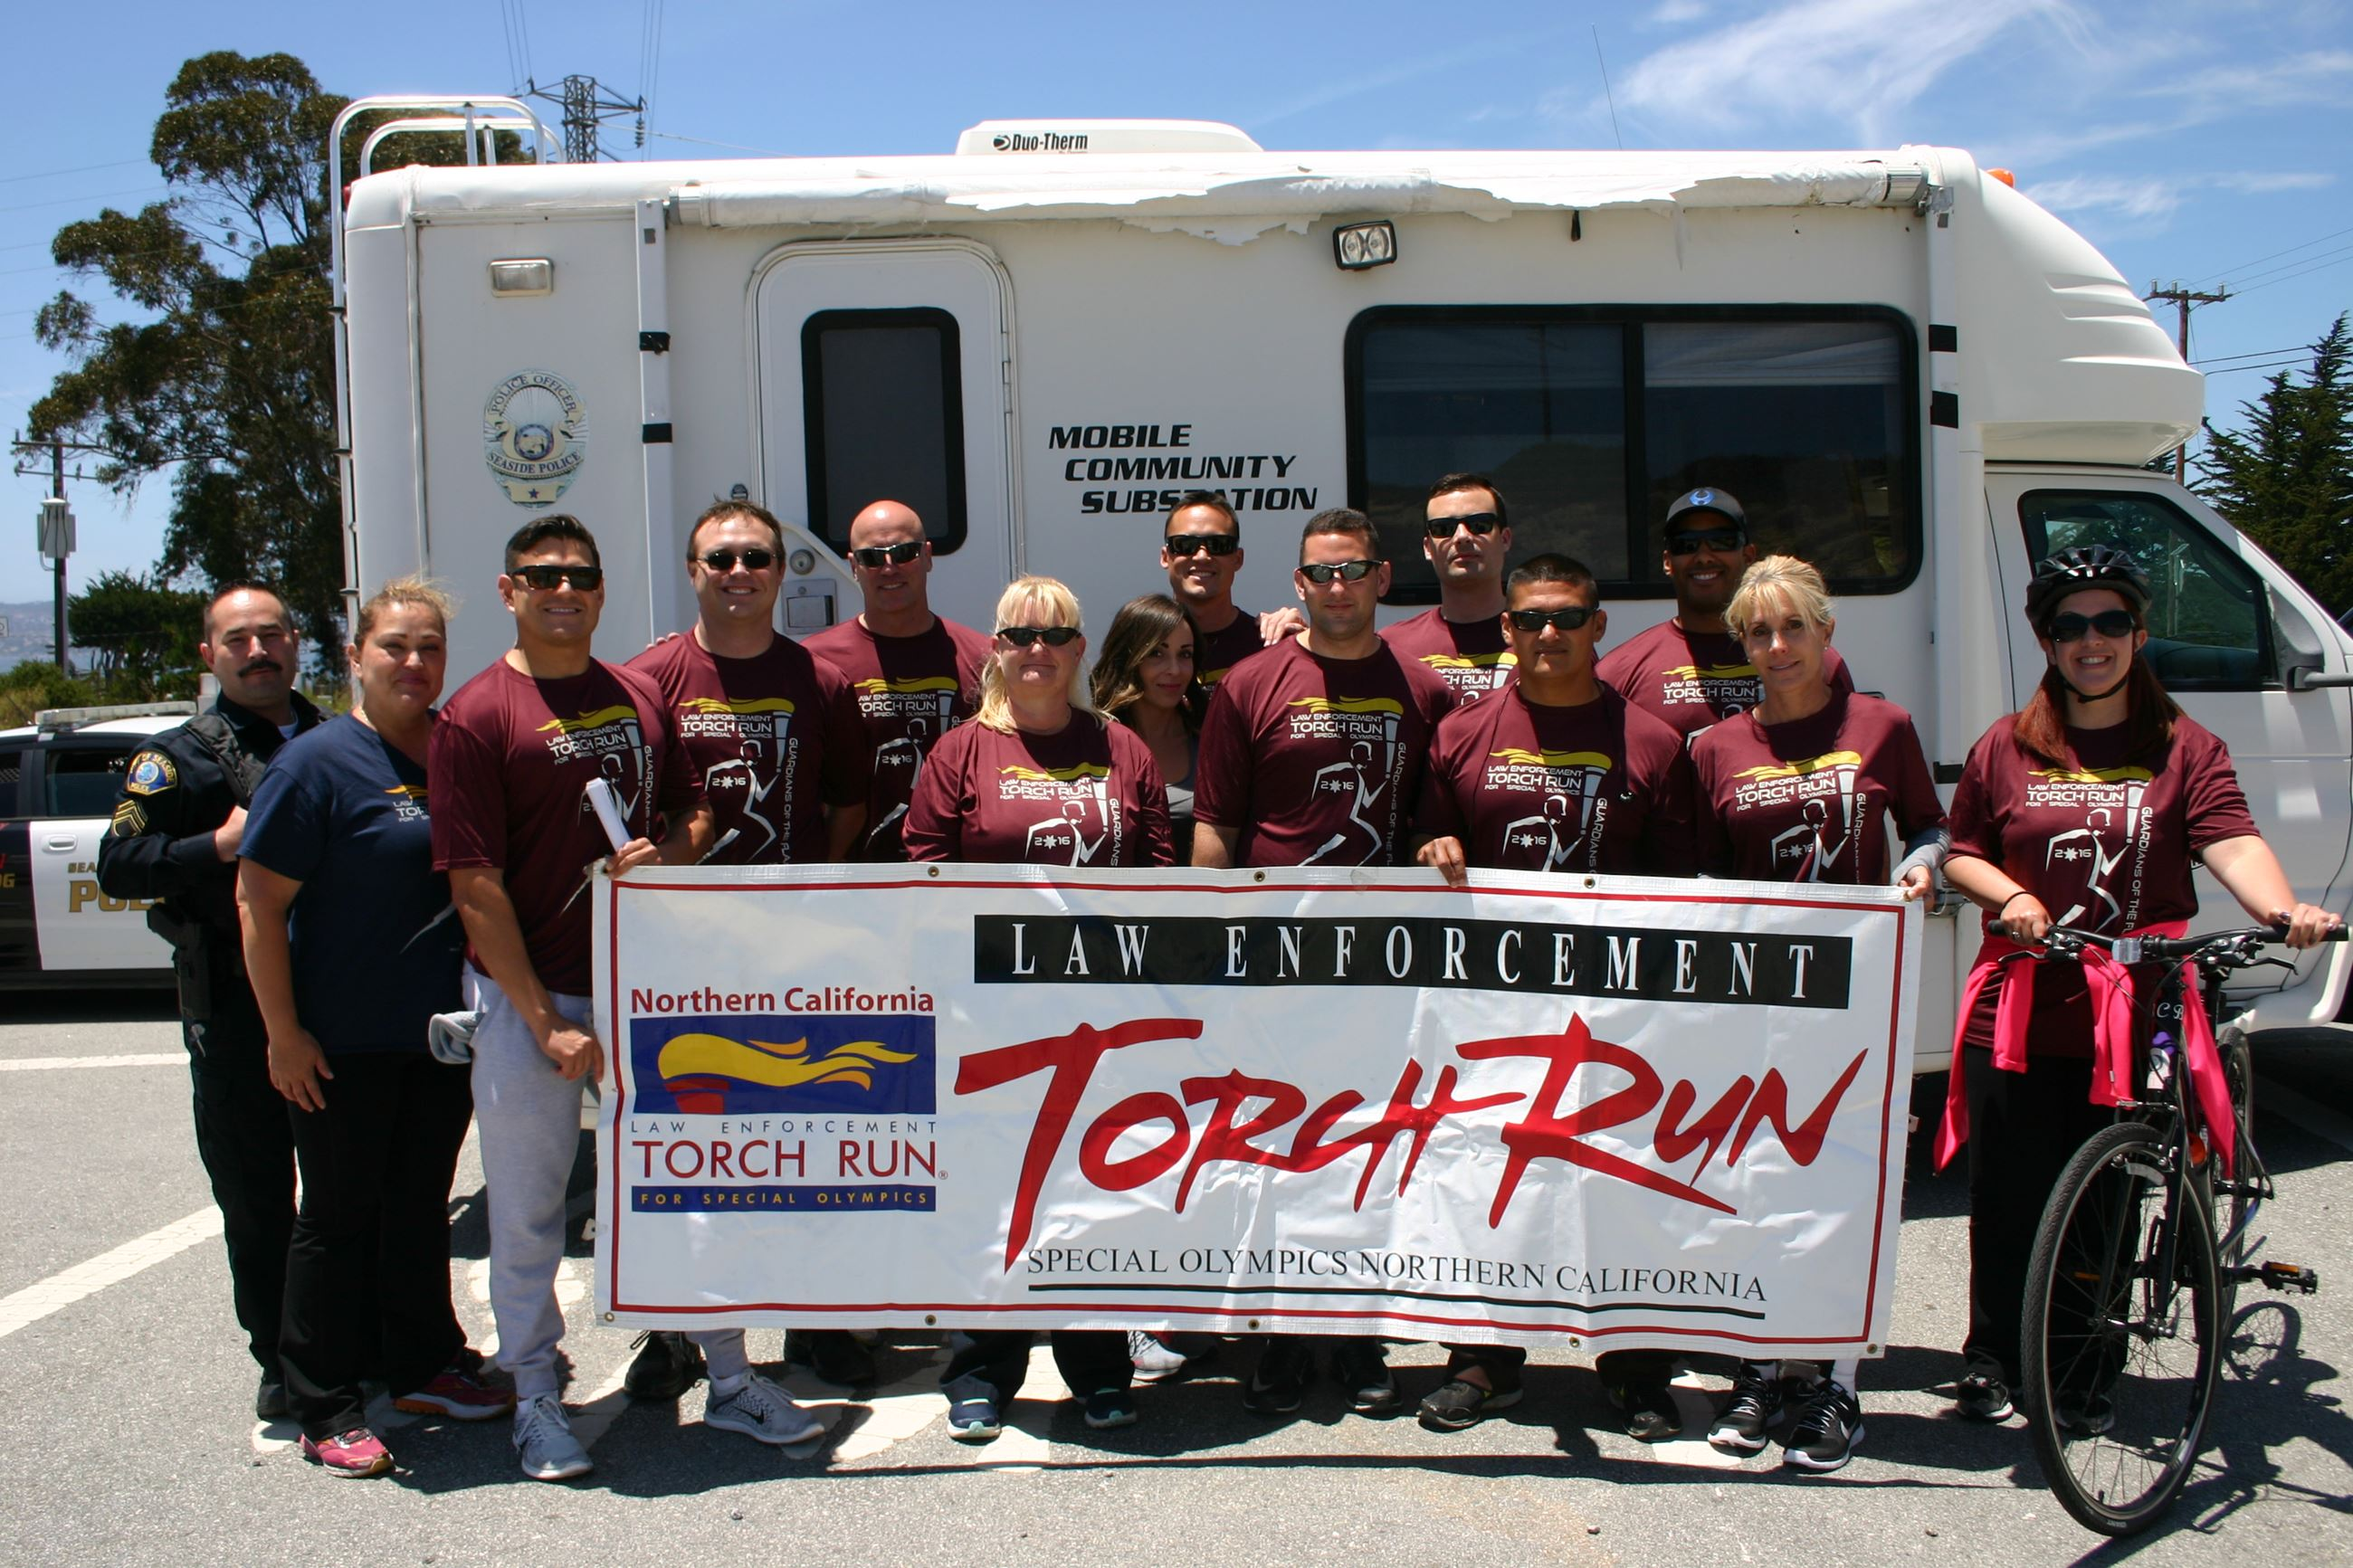 Group photo of Torch Run participants surrounding Torch Run banner